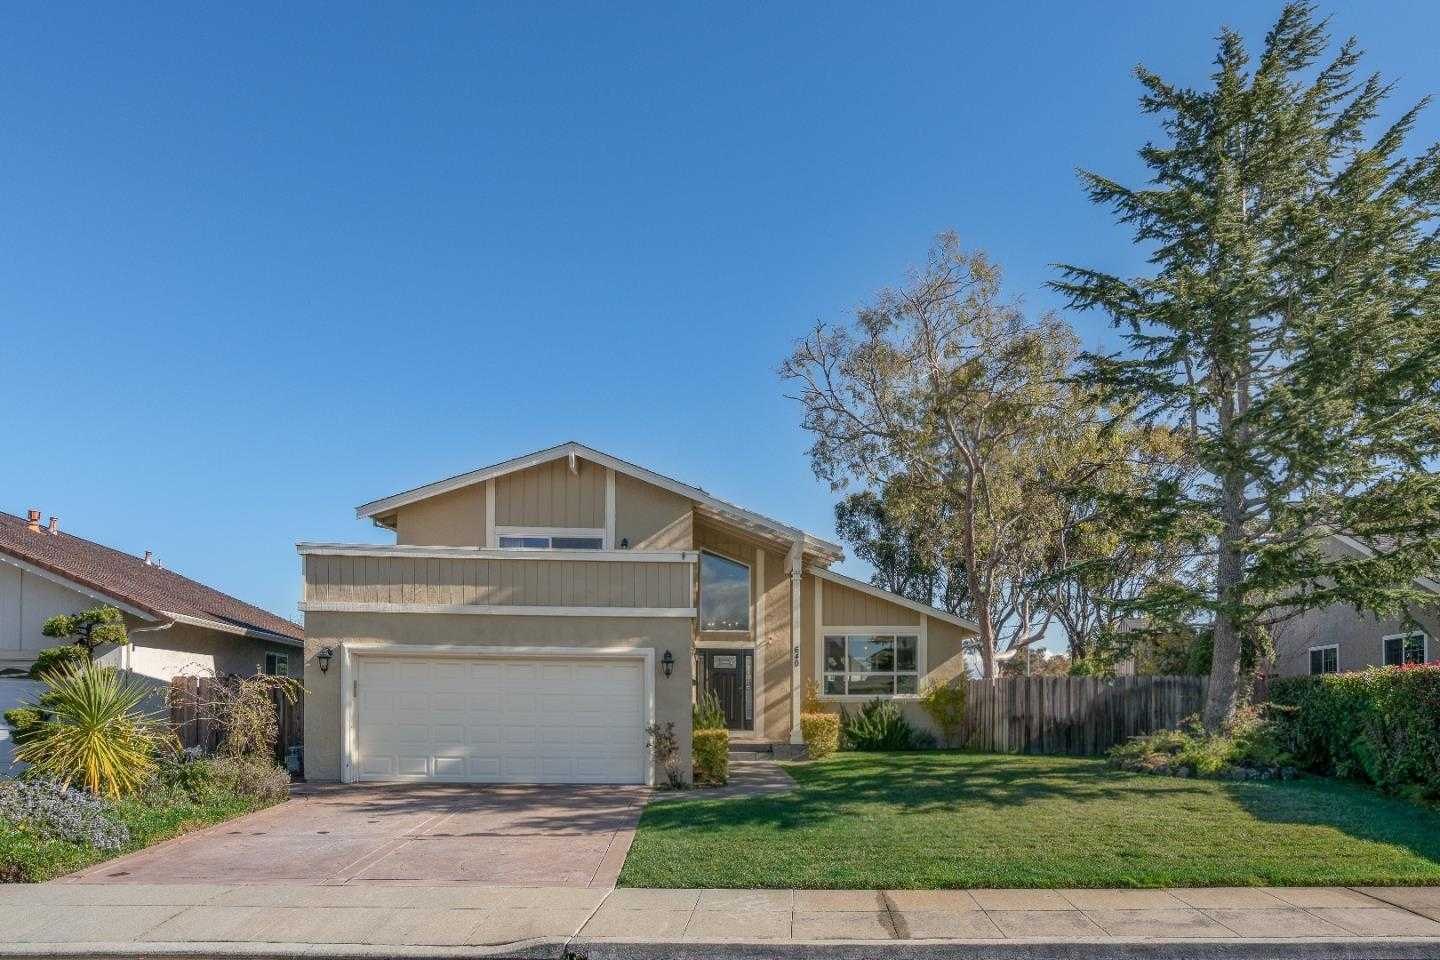 $2,295,000 - 4Br/3Ba -  for Sale in Foster City